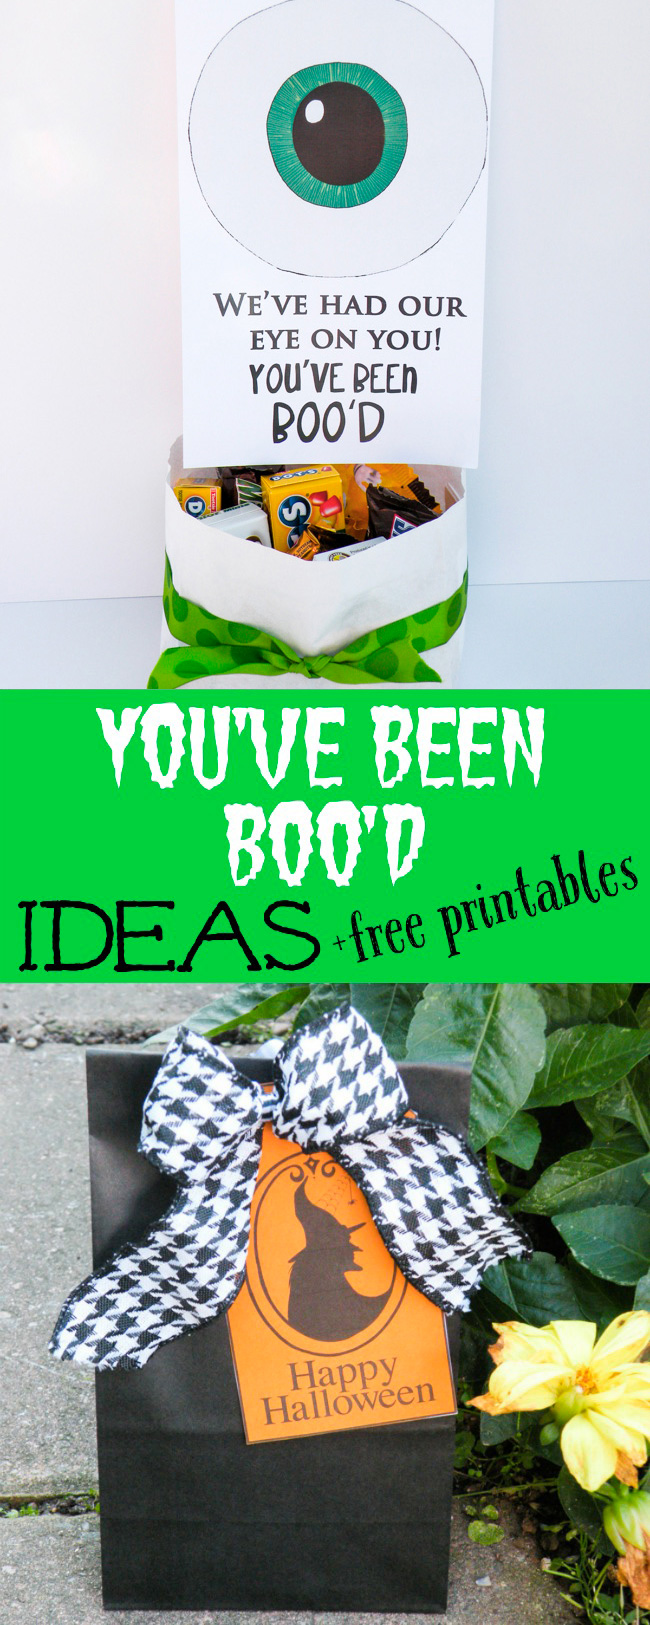 http://www.designdazzle.com/wp-content/uploads/2015/10/youve-been-bood-ideas-and-printables1.jpg